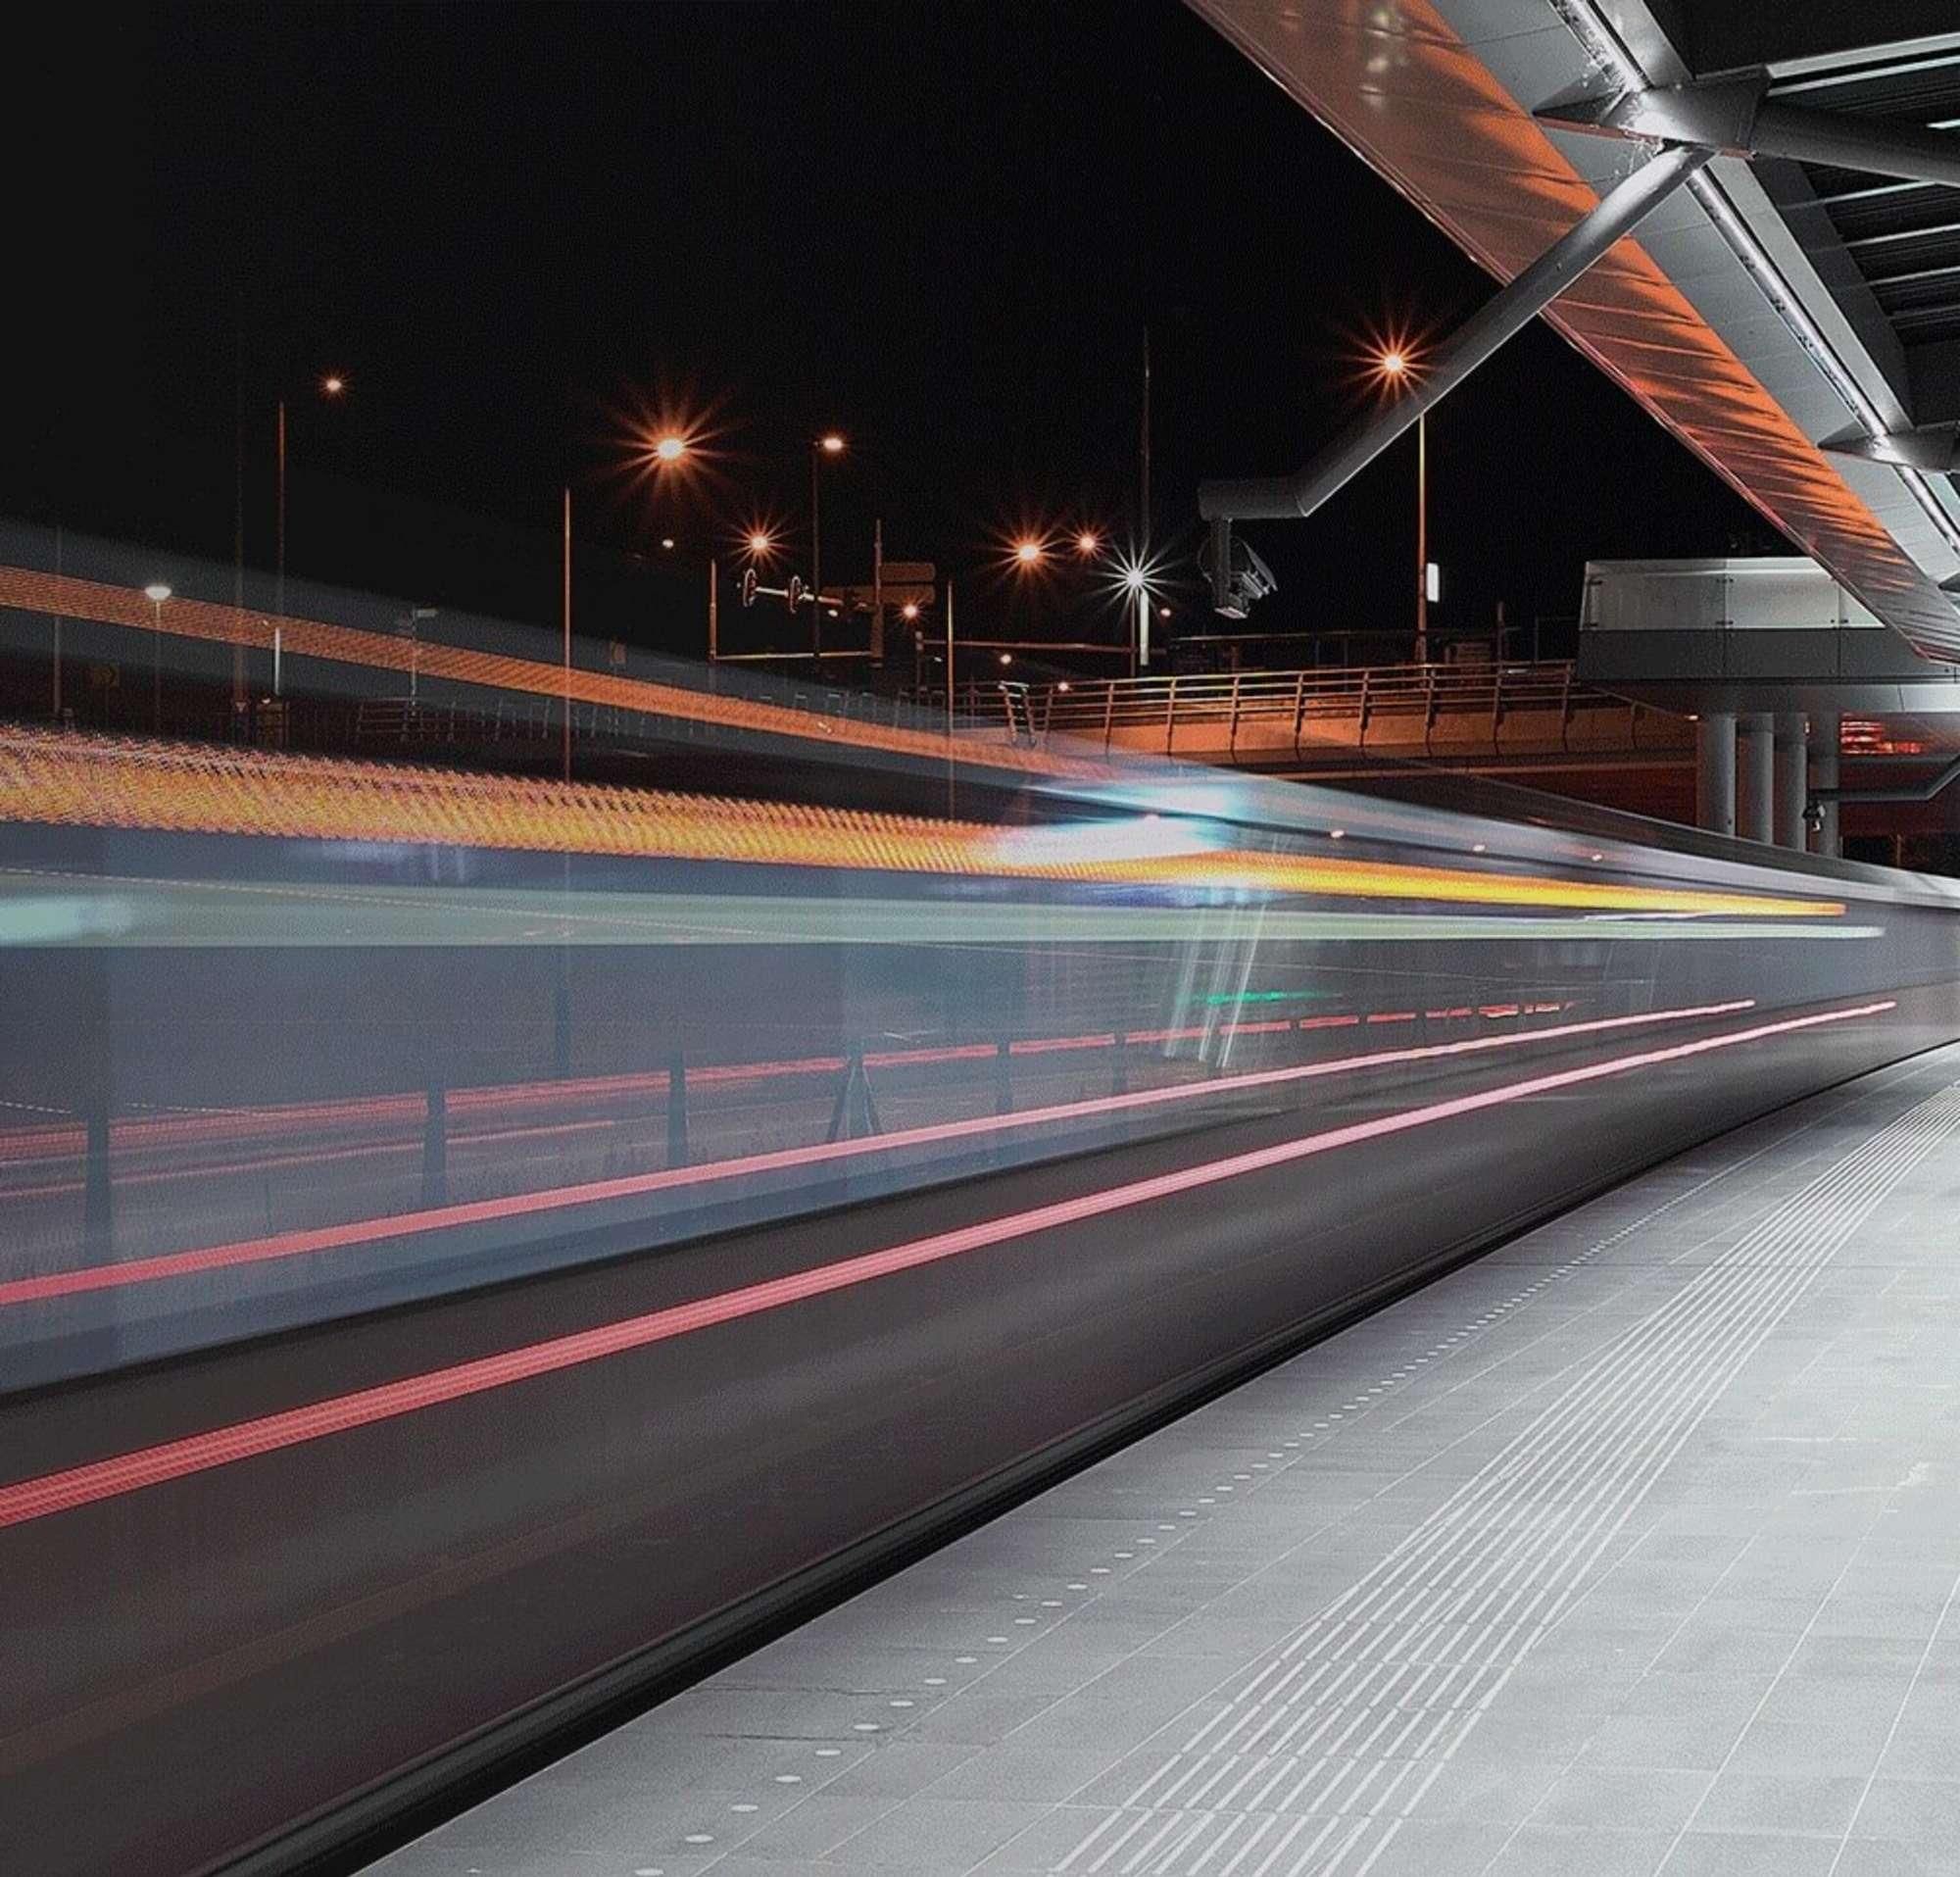 A long exposure photograph of lightrail platform at night.